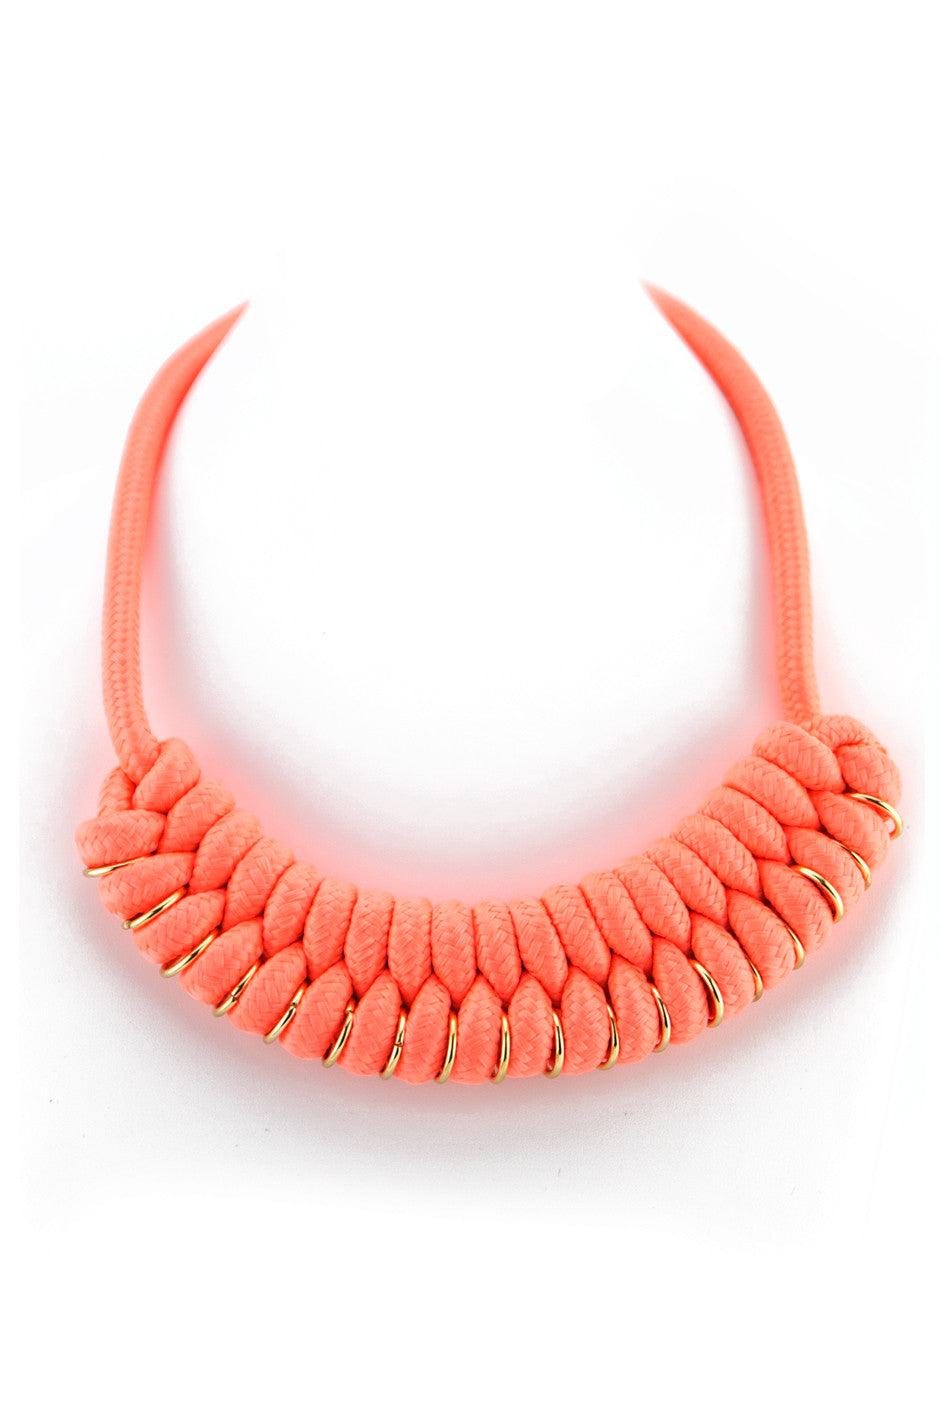 TIGHT ROPE NECKLACE - Peach - Haute & Rebellious